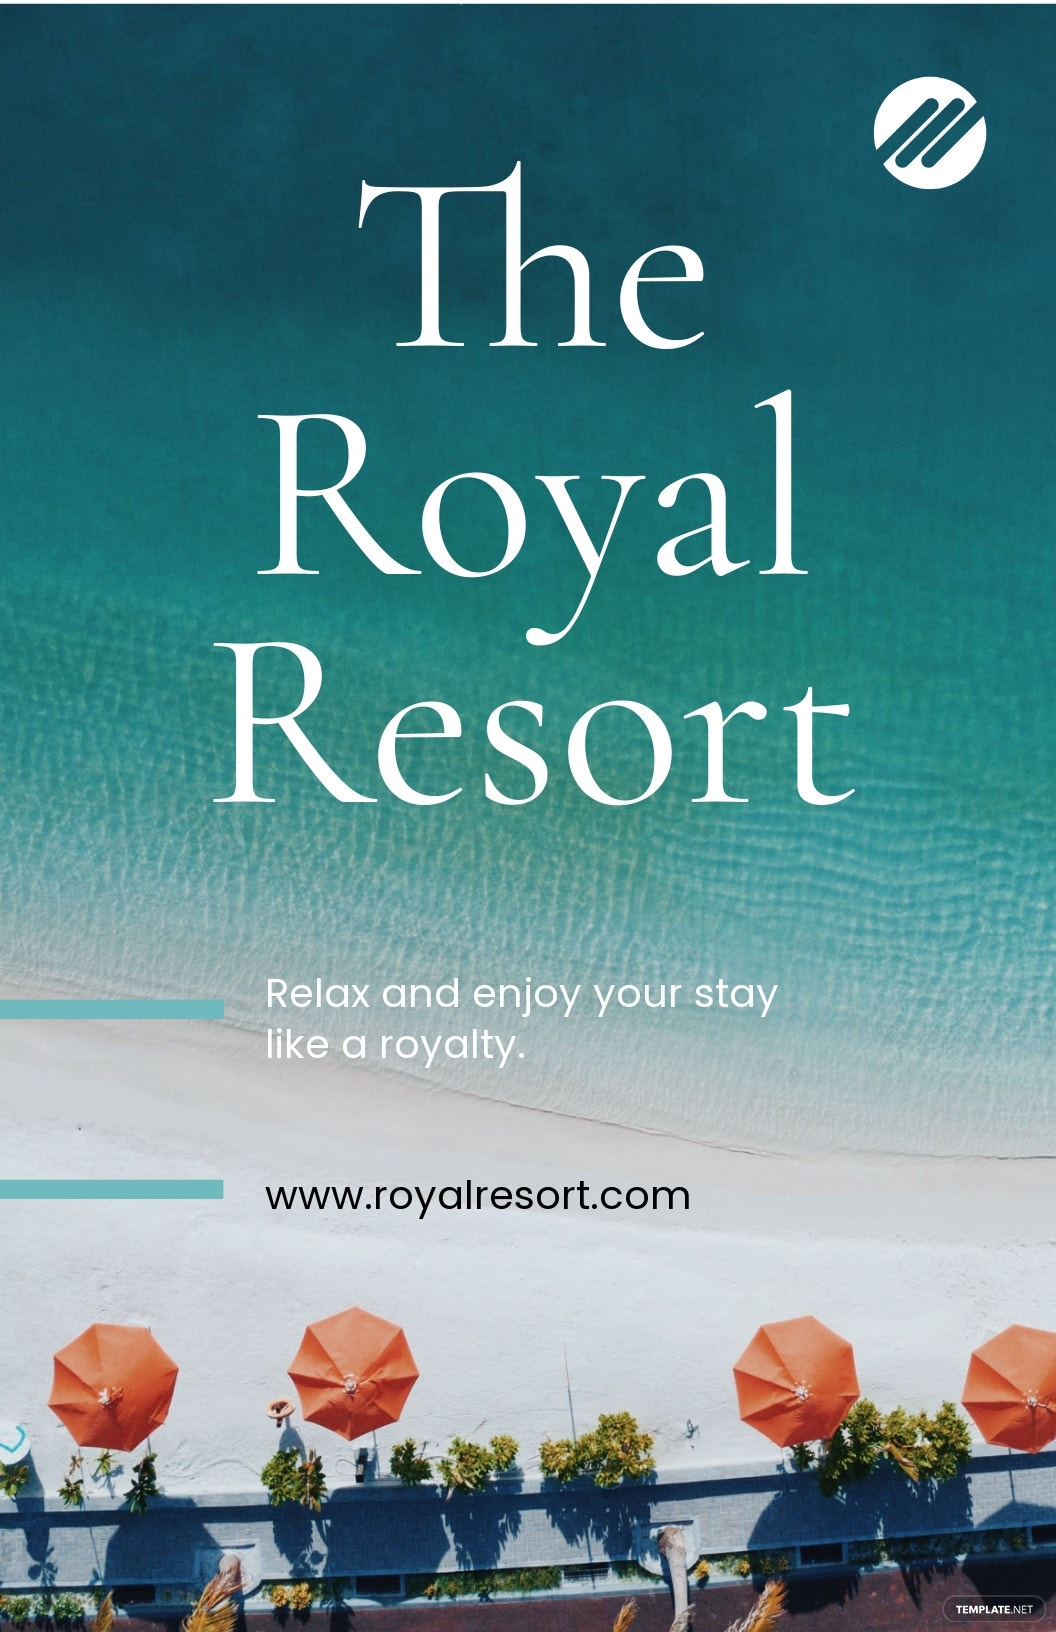 Royal Resort Poster Template.jpe